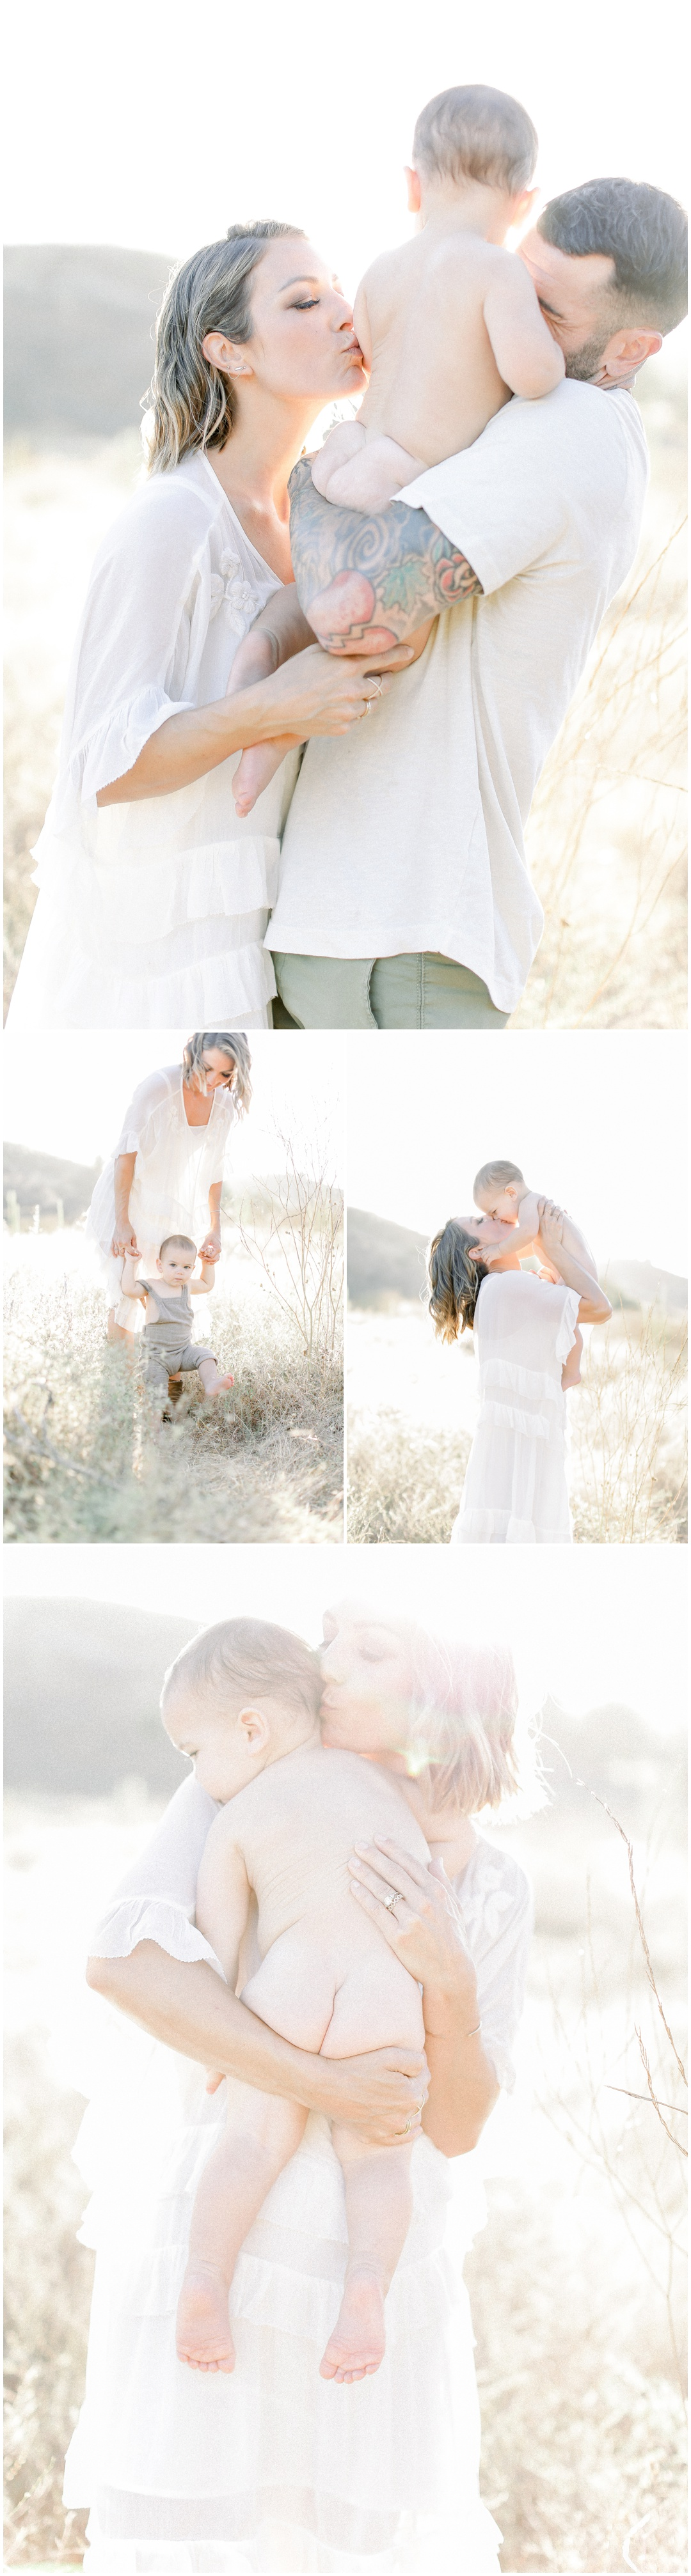 Newport_Beach_Family_Session_Orange_County_Family_Photographer_Thomas_Riley_Wilderness_Park_Carrie_Stotts_Sean_Stotts__4317.jpg